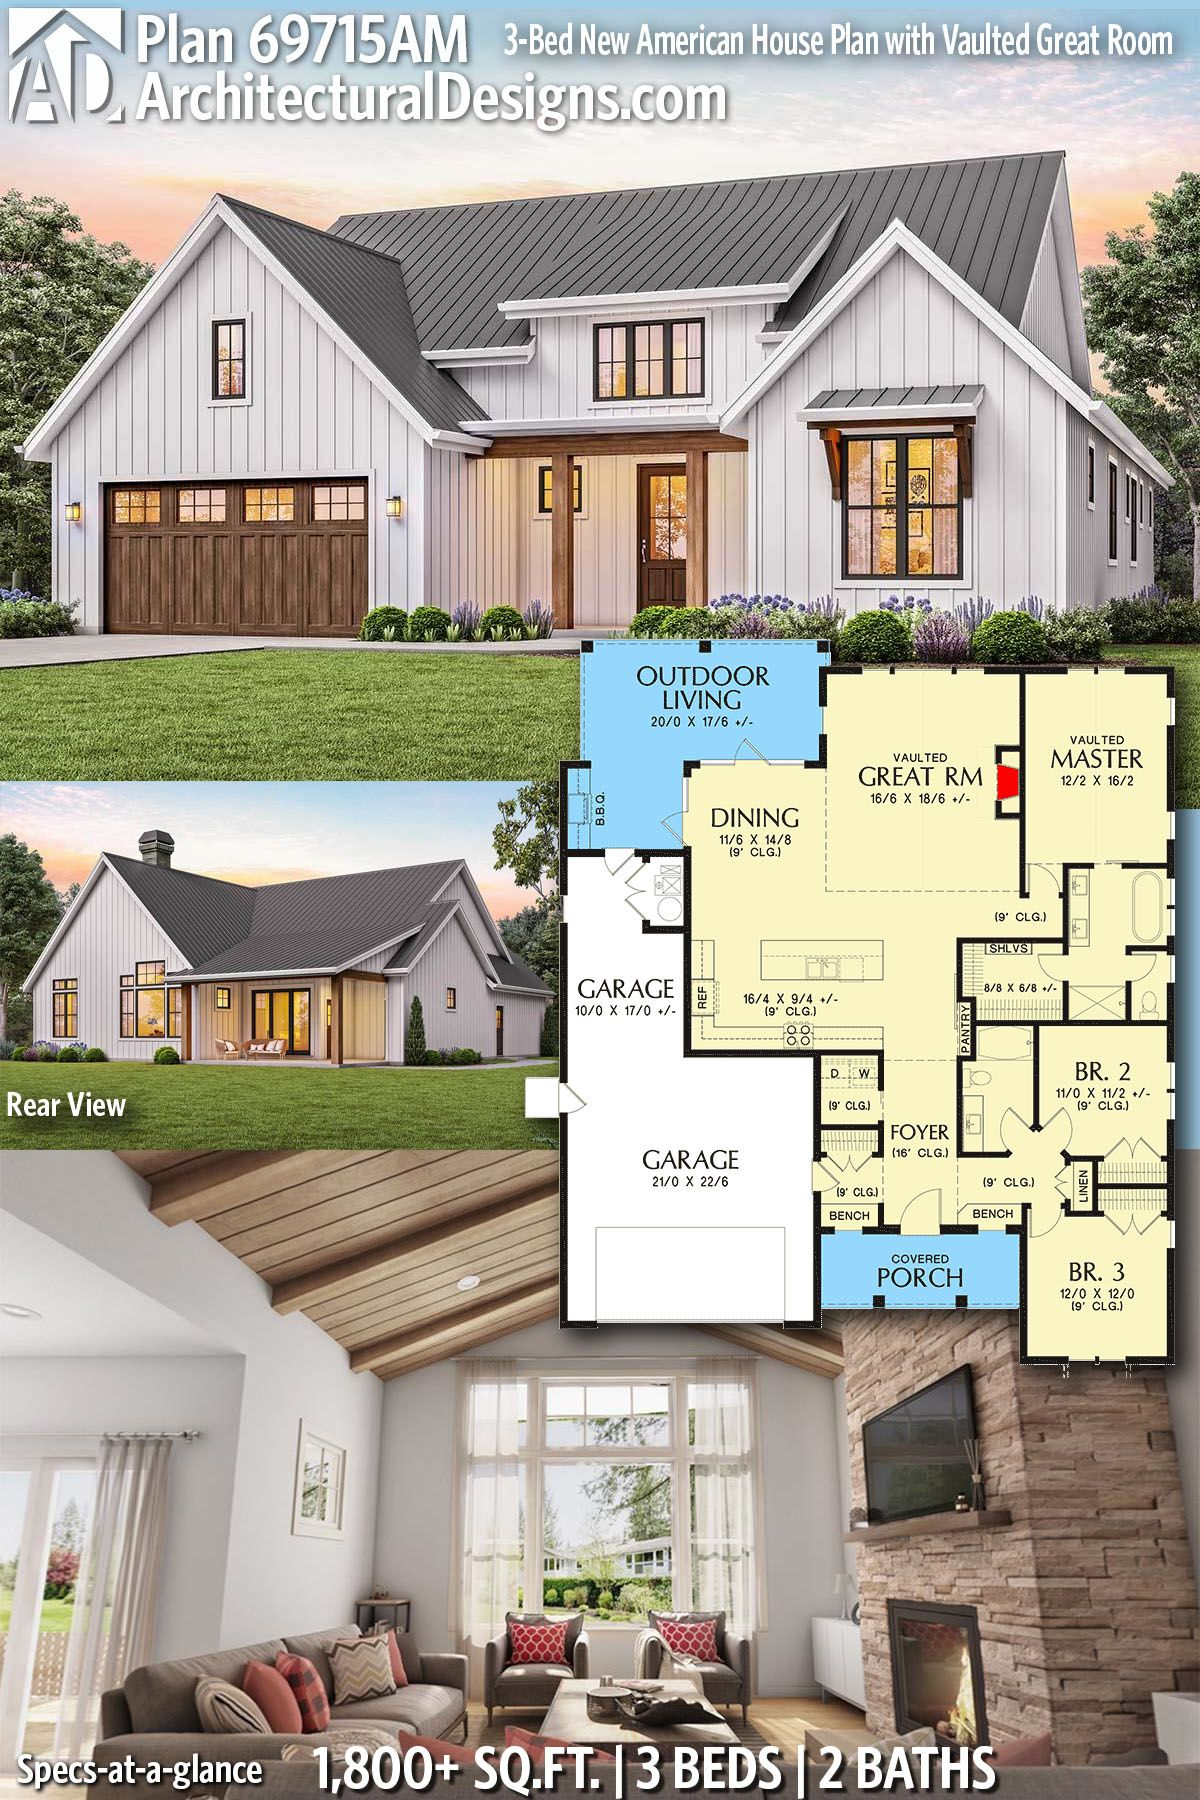 Plan 69715am 3 Bed New American House Plan With Vaulted